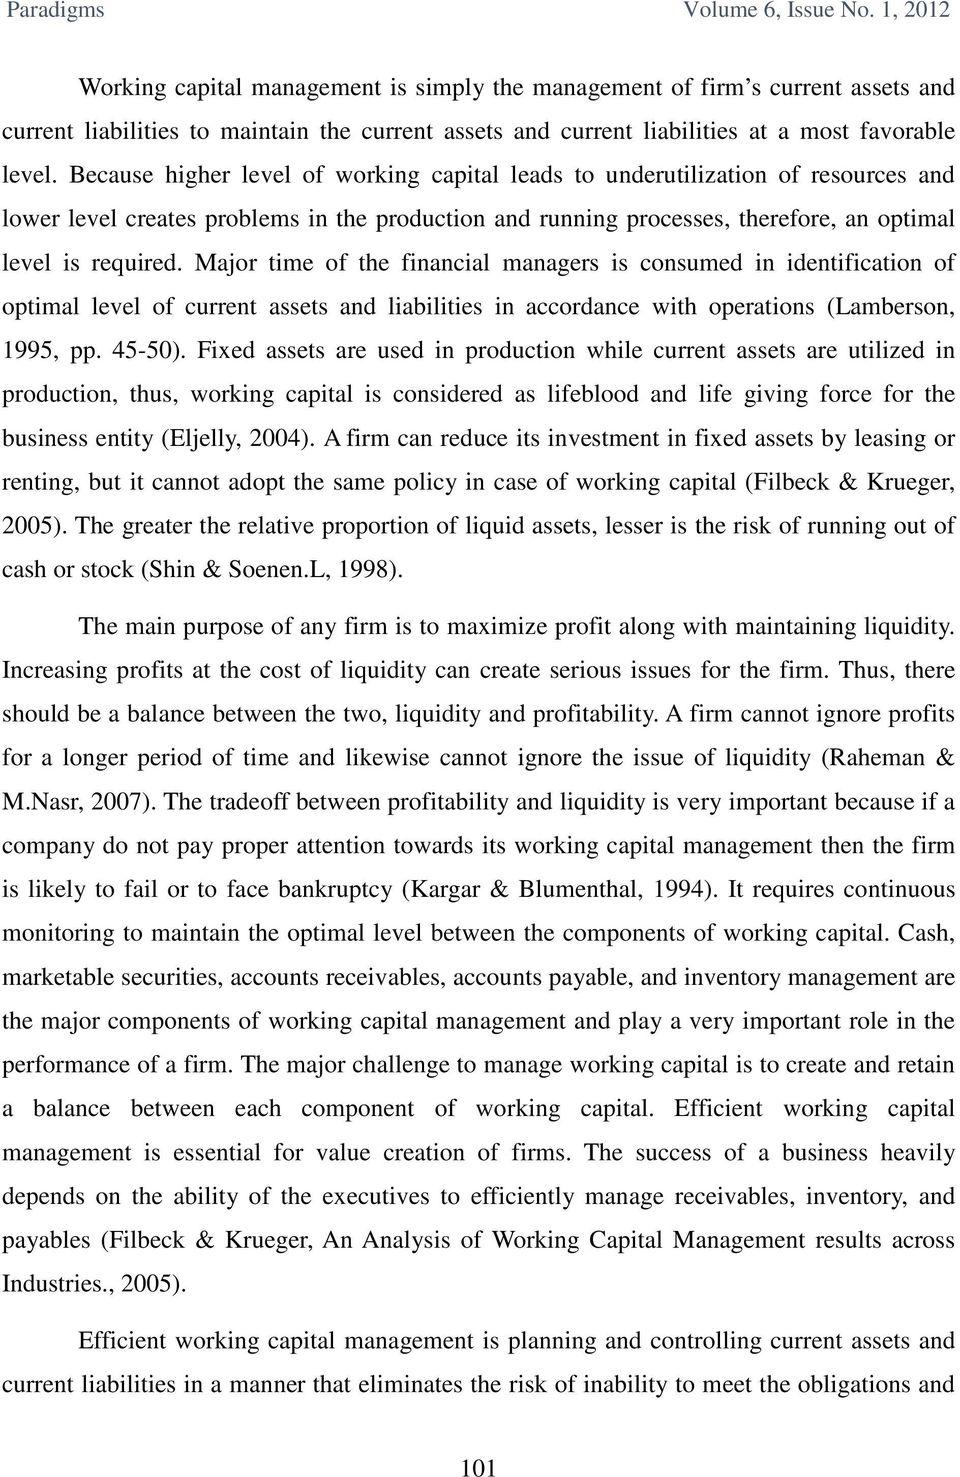 Major time of the financial managers is consumed in identification of optimal level of current assets and liabilities in accordance with operations (Lamberson, 1995, pp. 45-50).